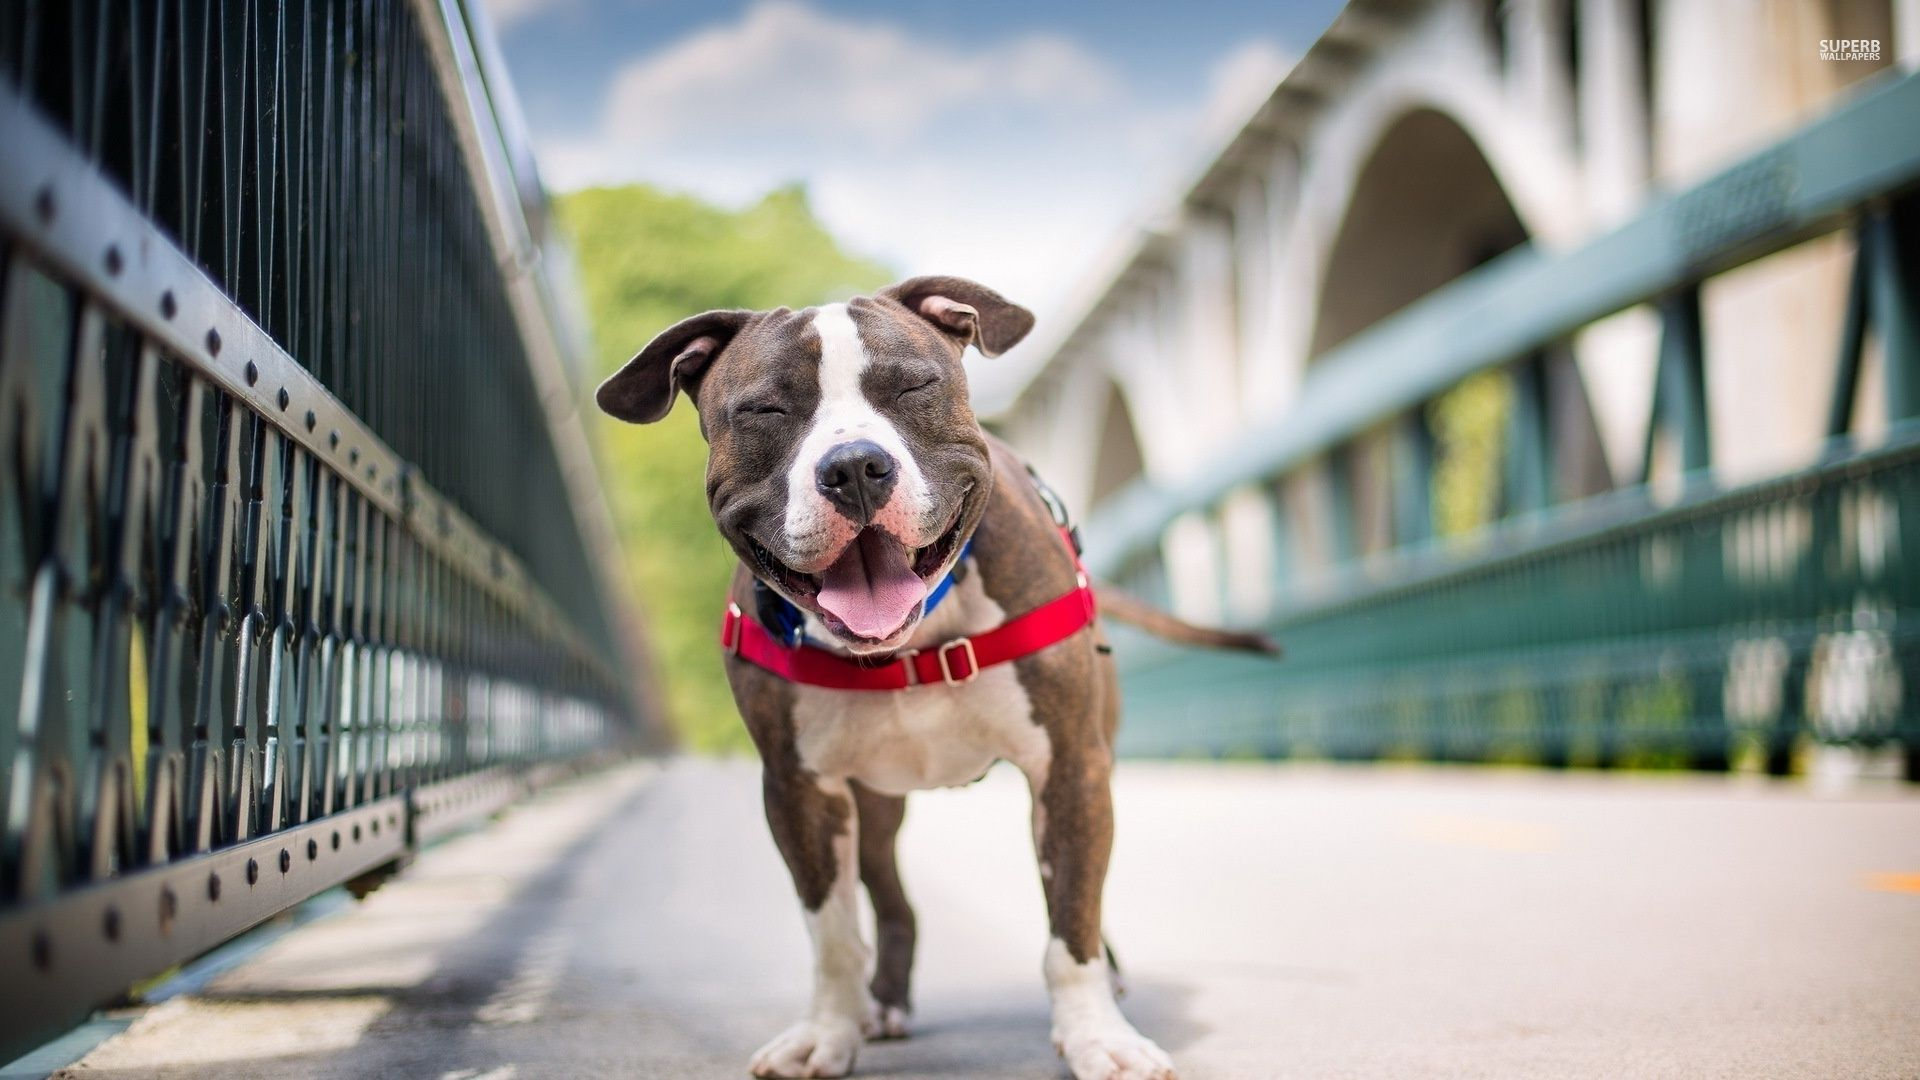 Pitbull wallpapers pitbull smiling on a bridge dogs wallpapers pitbull wallpapers pitbull smiling on a bridge solutioingenieria Image collections